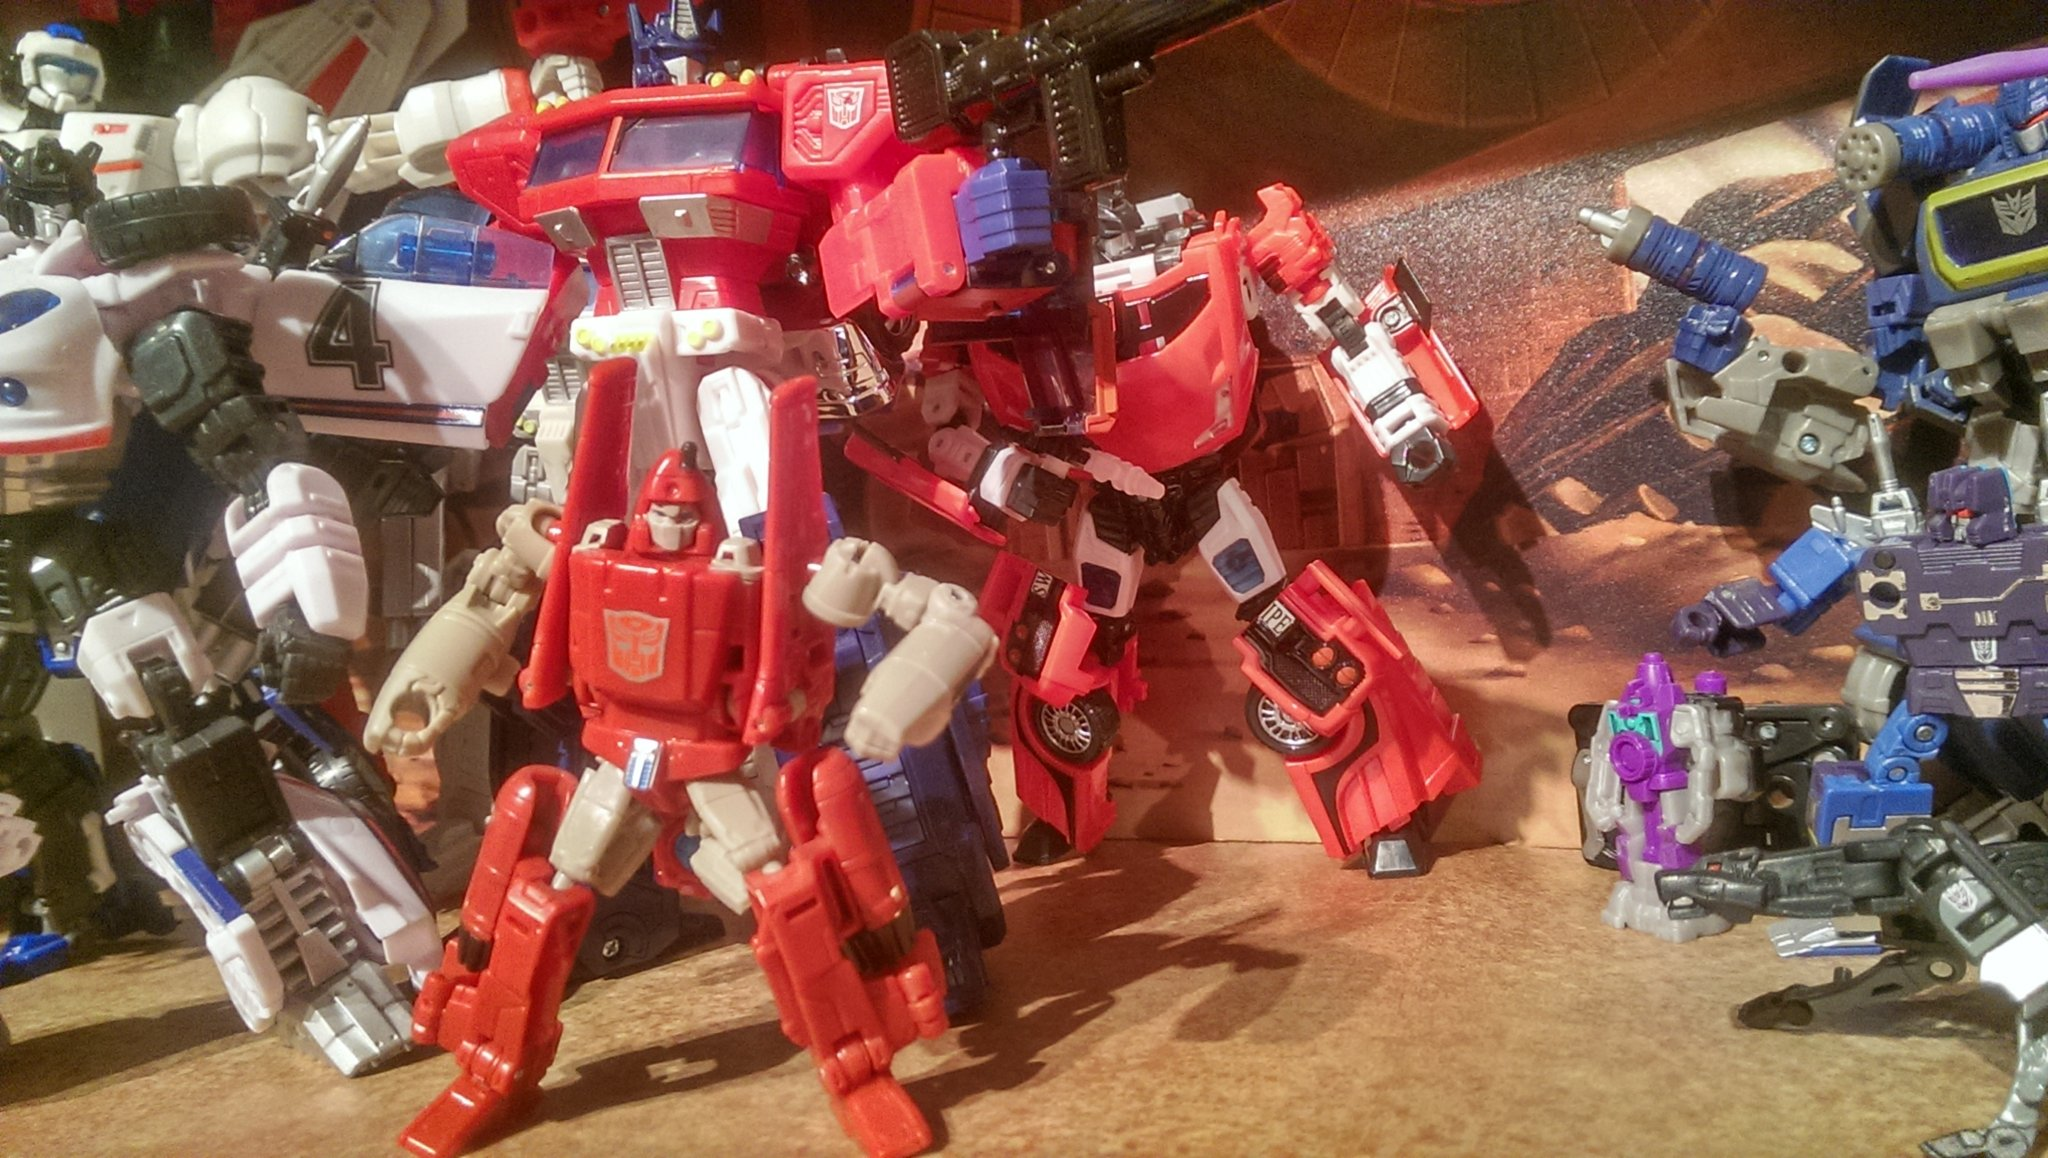 Favourite/best chug voyager optimus prime | Page 3 | TFW2005 - The ...